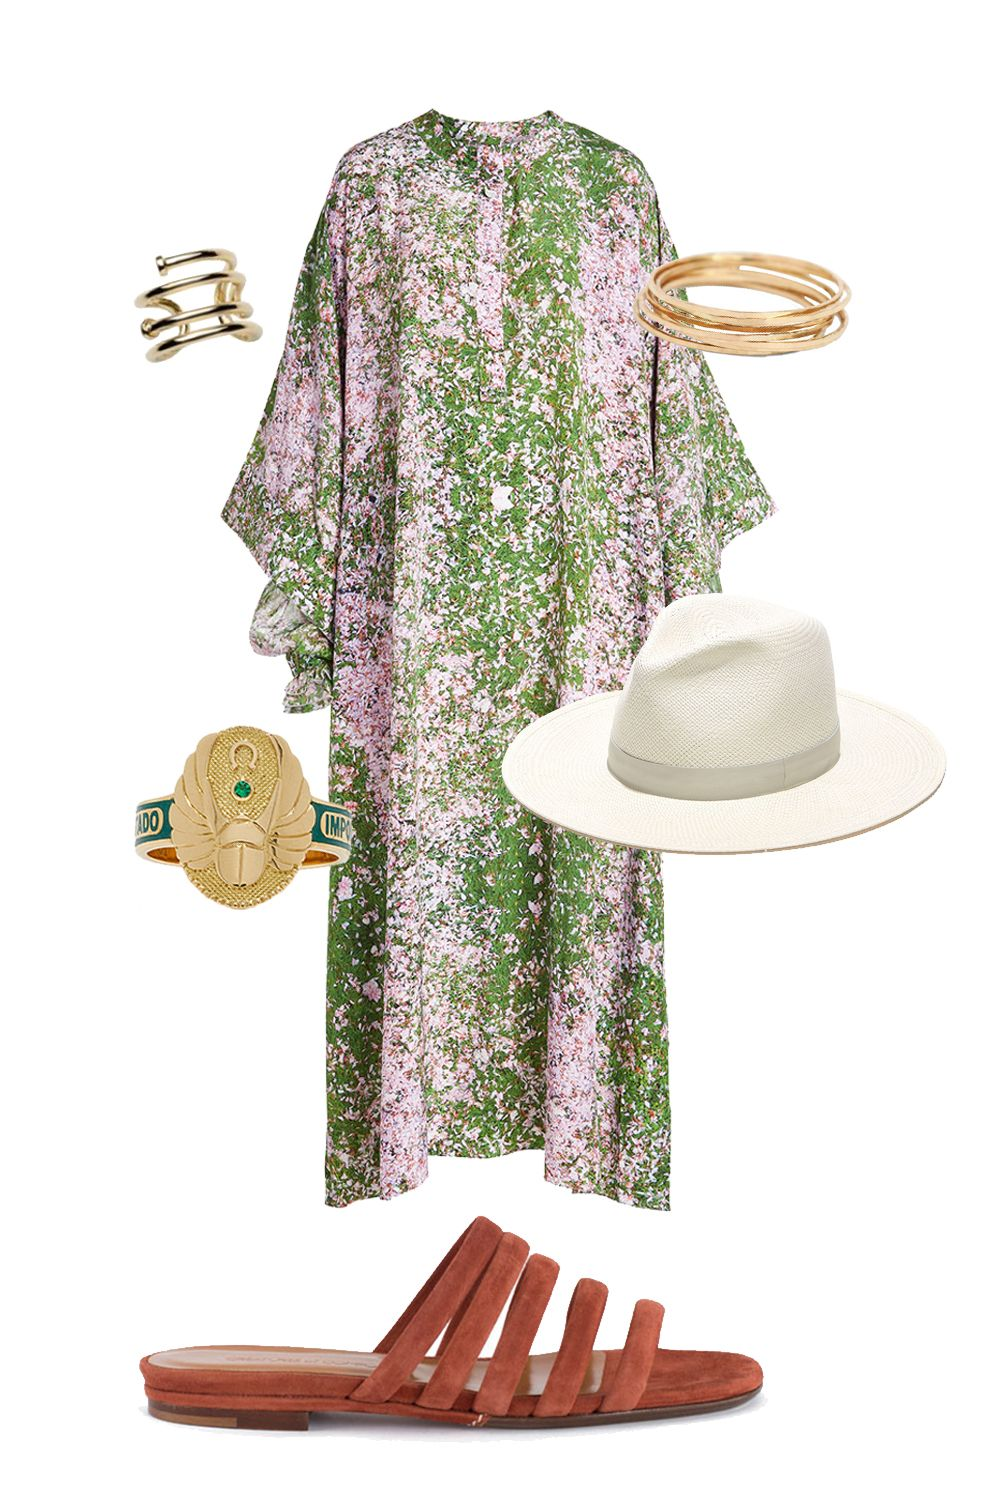 "<p>Festival-goer or headliner? With flamboyant Jupiter in your fame zone this festival season, you're sure to wind up on the style bloggers' feeds. Dress like you own the mainstage! Creat an outfit around insanely colorful 1970s tunics and muumuus. Accessorize with a wide-brimmed fedora, tons of rings (Gemini rules the hands) and a guitar, if you play. Stick to flat, comfortable sandals, so you can dance 'til dawn.</p><p><em data-redactor-tag=""em"" data-verified=""redactor"">Natasha Zinko Printed Silk Dress, $1, 299; <a href=""https://www.stylebop.com/en-us/women/printed-silk-dress-264583.html"">stylebop.com</a> </em></p><p><em data-redactor-tag=""em"" data-verified=""redactor"">Catbird Threadbare Ring, $44 each; <a href=""https://www.catbirdnyc.com/jewelry/rings/threadbare-ring-yellow-gold.html"">catbirdnyc.com</a> </em></p><p><em data-redactor-tag=""em"" data-verified=""redactor"">Jennifer Fisher Pipe Pinky Ring, $165; <a href=""https://jenniferfisherjewelry.com/jewelry/rings-17/pipe-pinky-ring"">jenniferfisherjewelry.com</a> </em></p><p><em data-redactor-tag=""em"" data-verified=""redactor"">Foundrae Protection Cigarband, $2,850; <a href=""https://www.modaoperandi.com/foundrae-fw17/protection-cigarband?gclid=CNP1pem25tMCFRlWDQodHcEPQw#zoom"">modaoperandi.com</a> </em></p><p><em data-redactor-tag=""em"" data-verified=""redactor"">Creatures of Comfort Cinnamon Como Slide, $395; <a href=""http://bonadrag.com/creaturesofcomfort-cinnamon-como-slide"">bonadrag.com</a> </em></p><p><em data-redactor-tag=""em"" data-verified=""redactor"">Janessa Leoné Aisley Hat, $250; </em><a href=""https://janessaleone.com/collections/straw/products/aisley-1""><em data-redactor-tag=""em"" data-verified=""redactor"">janessaleone.com</em></a></p>"